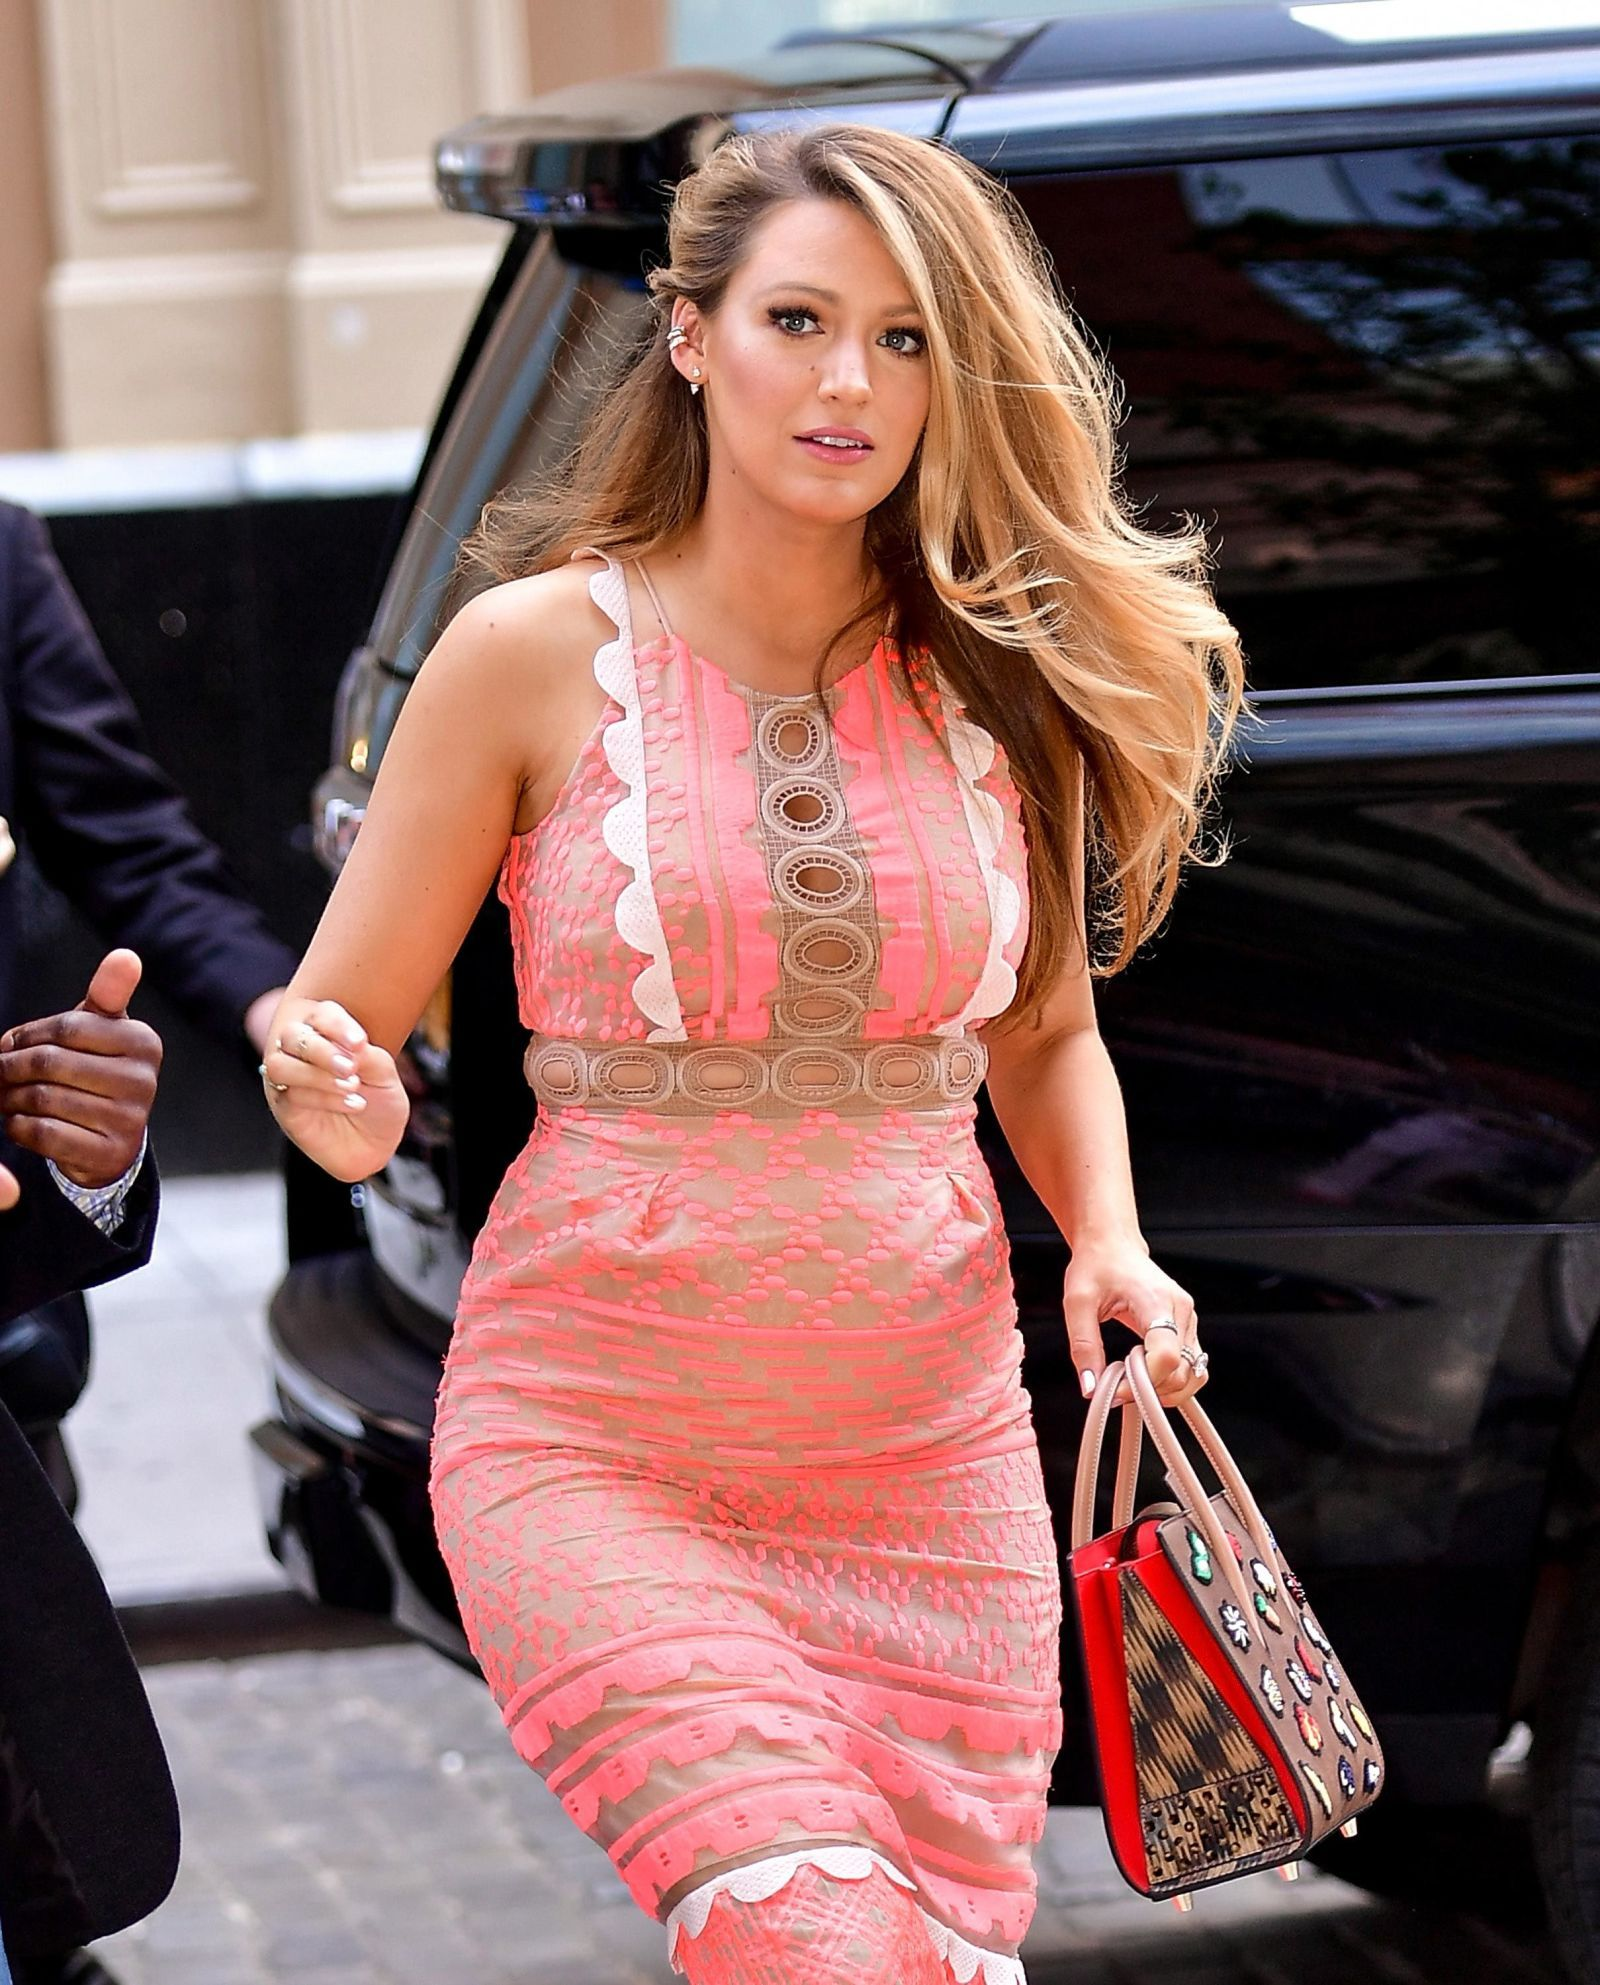 Blake Lively Has Never Looked Prettier Than in This Pink Dress